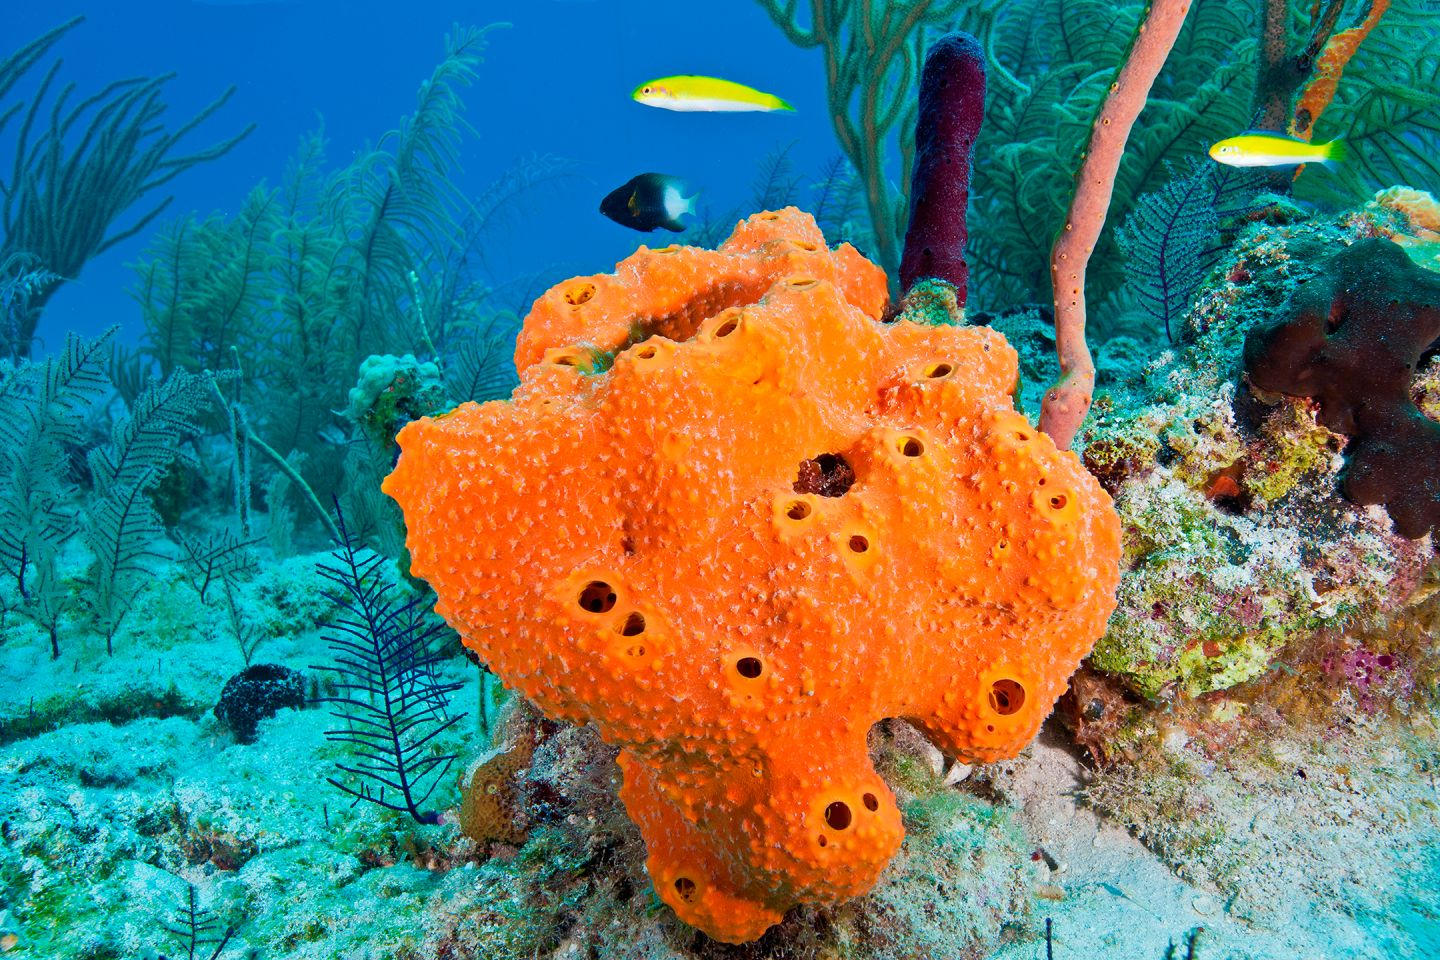 Sea Sponge Facts | Types of Sponges | DK Find Out